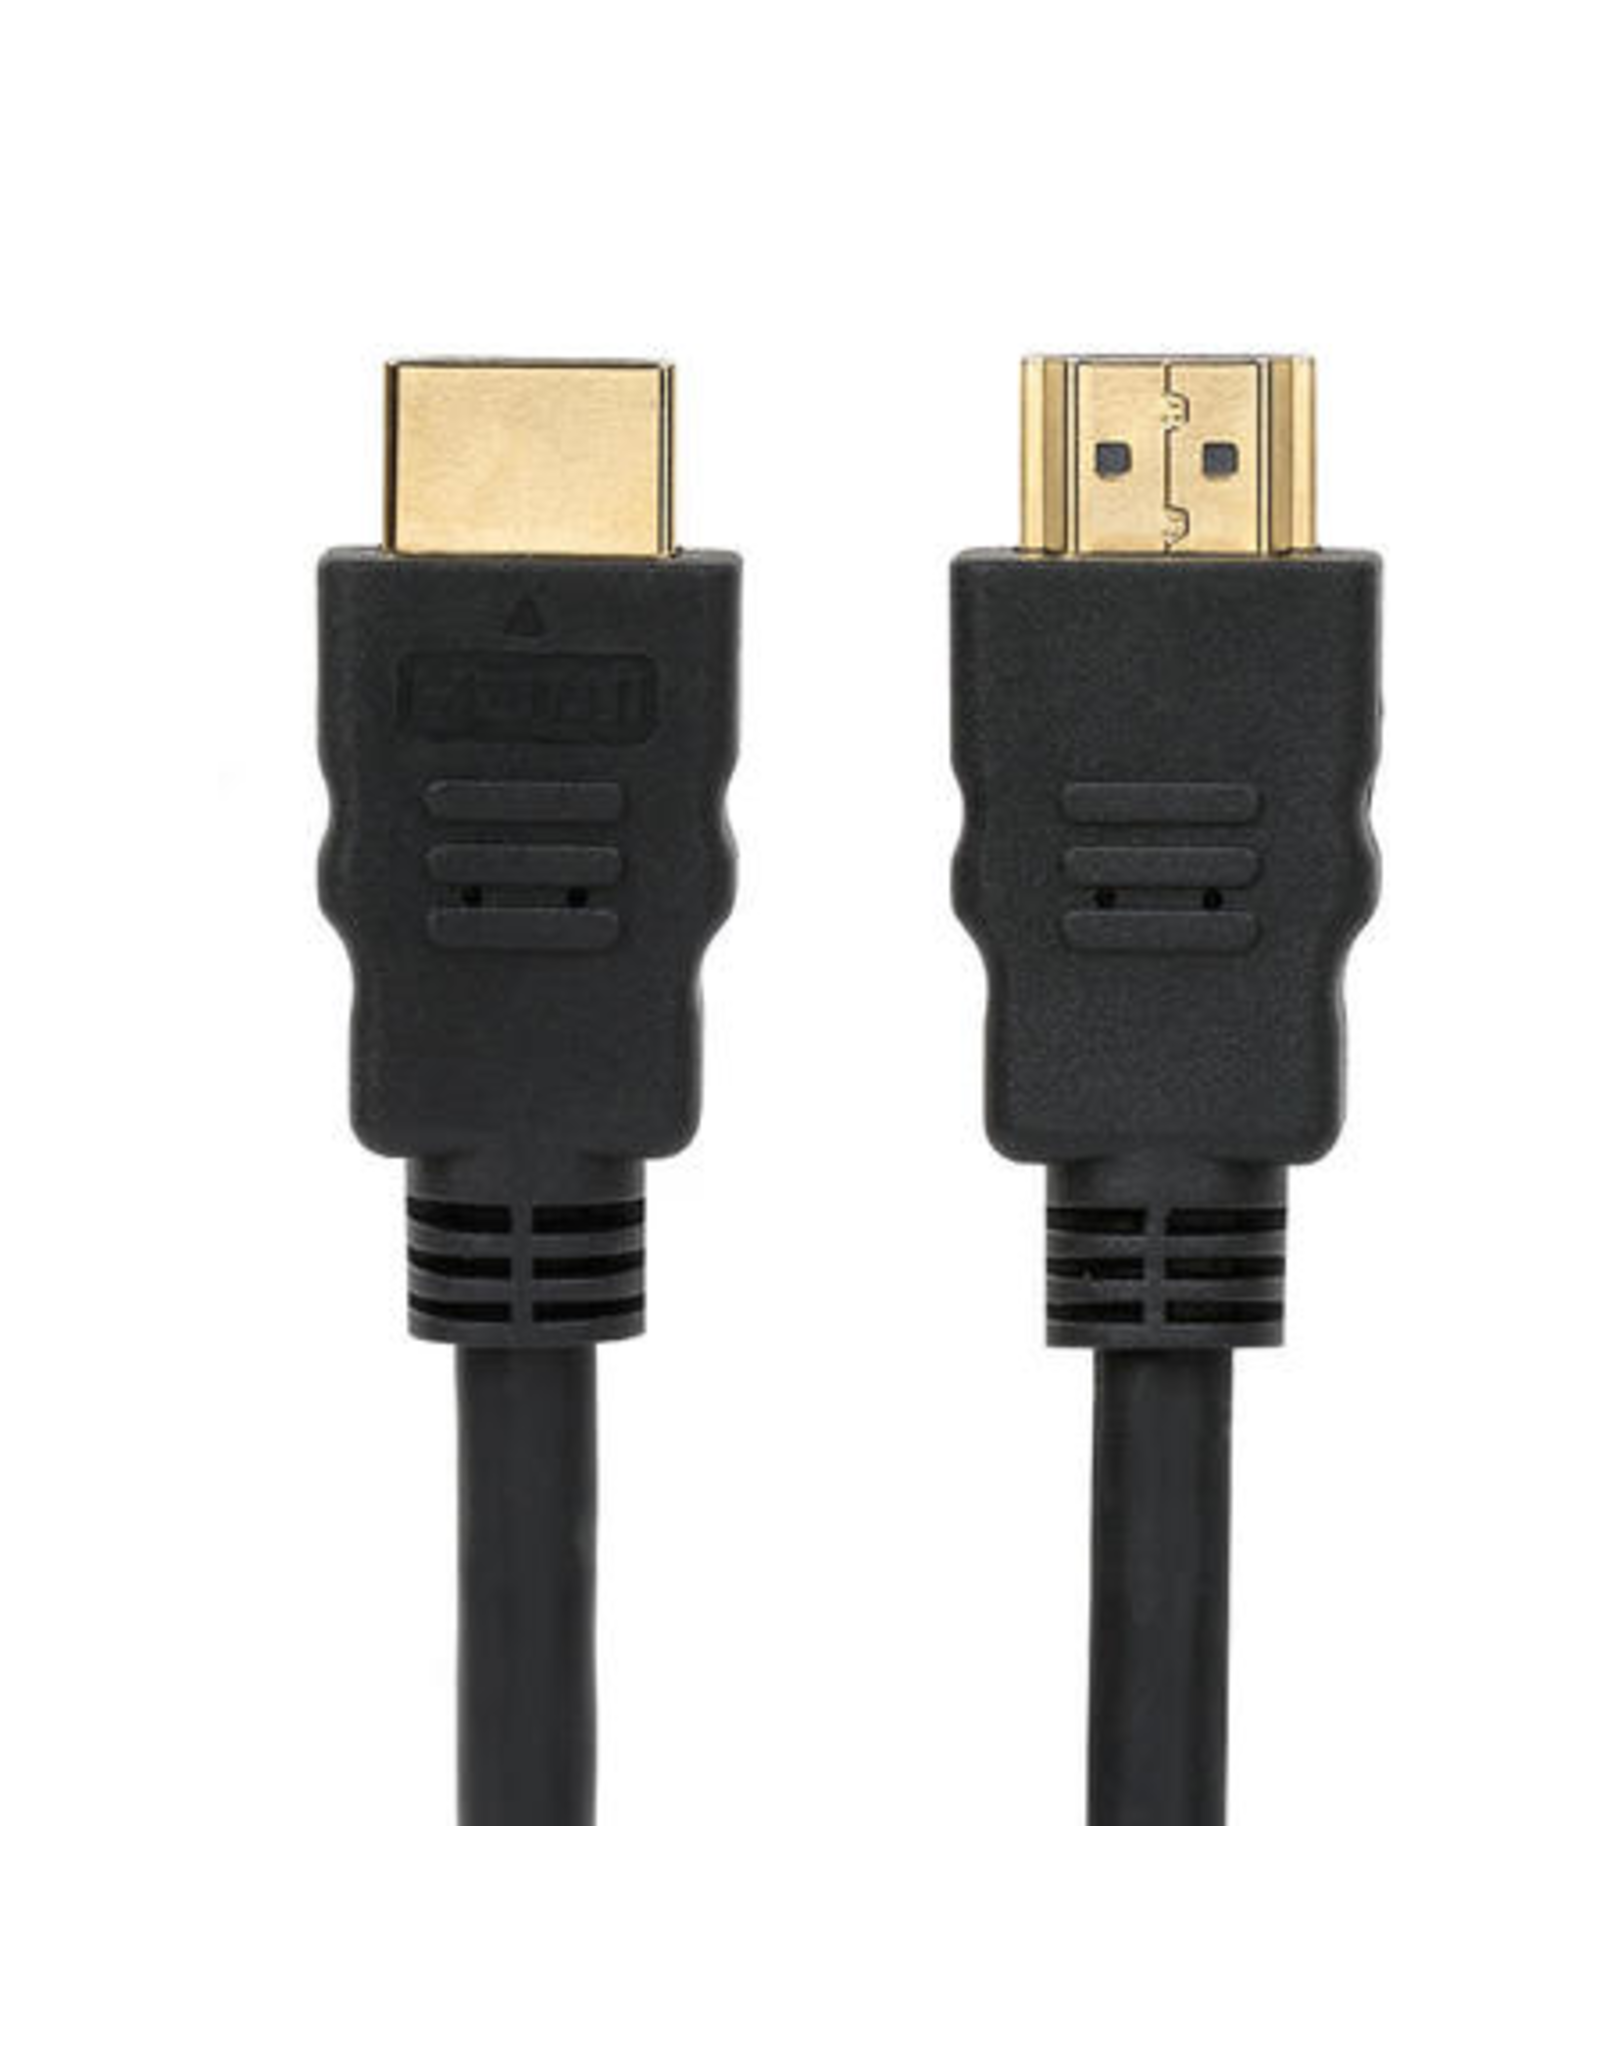 HDMI 10Ft cable Premium 3D 1.4 24K Gold Plated